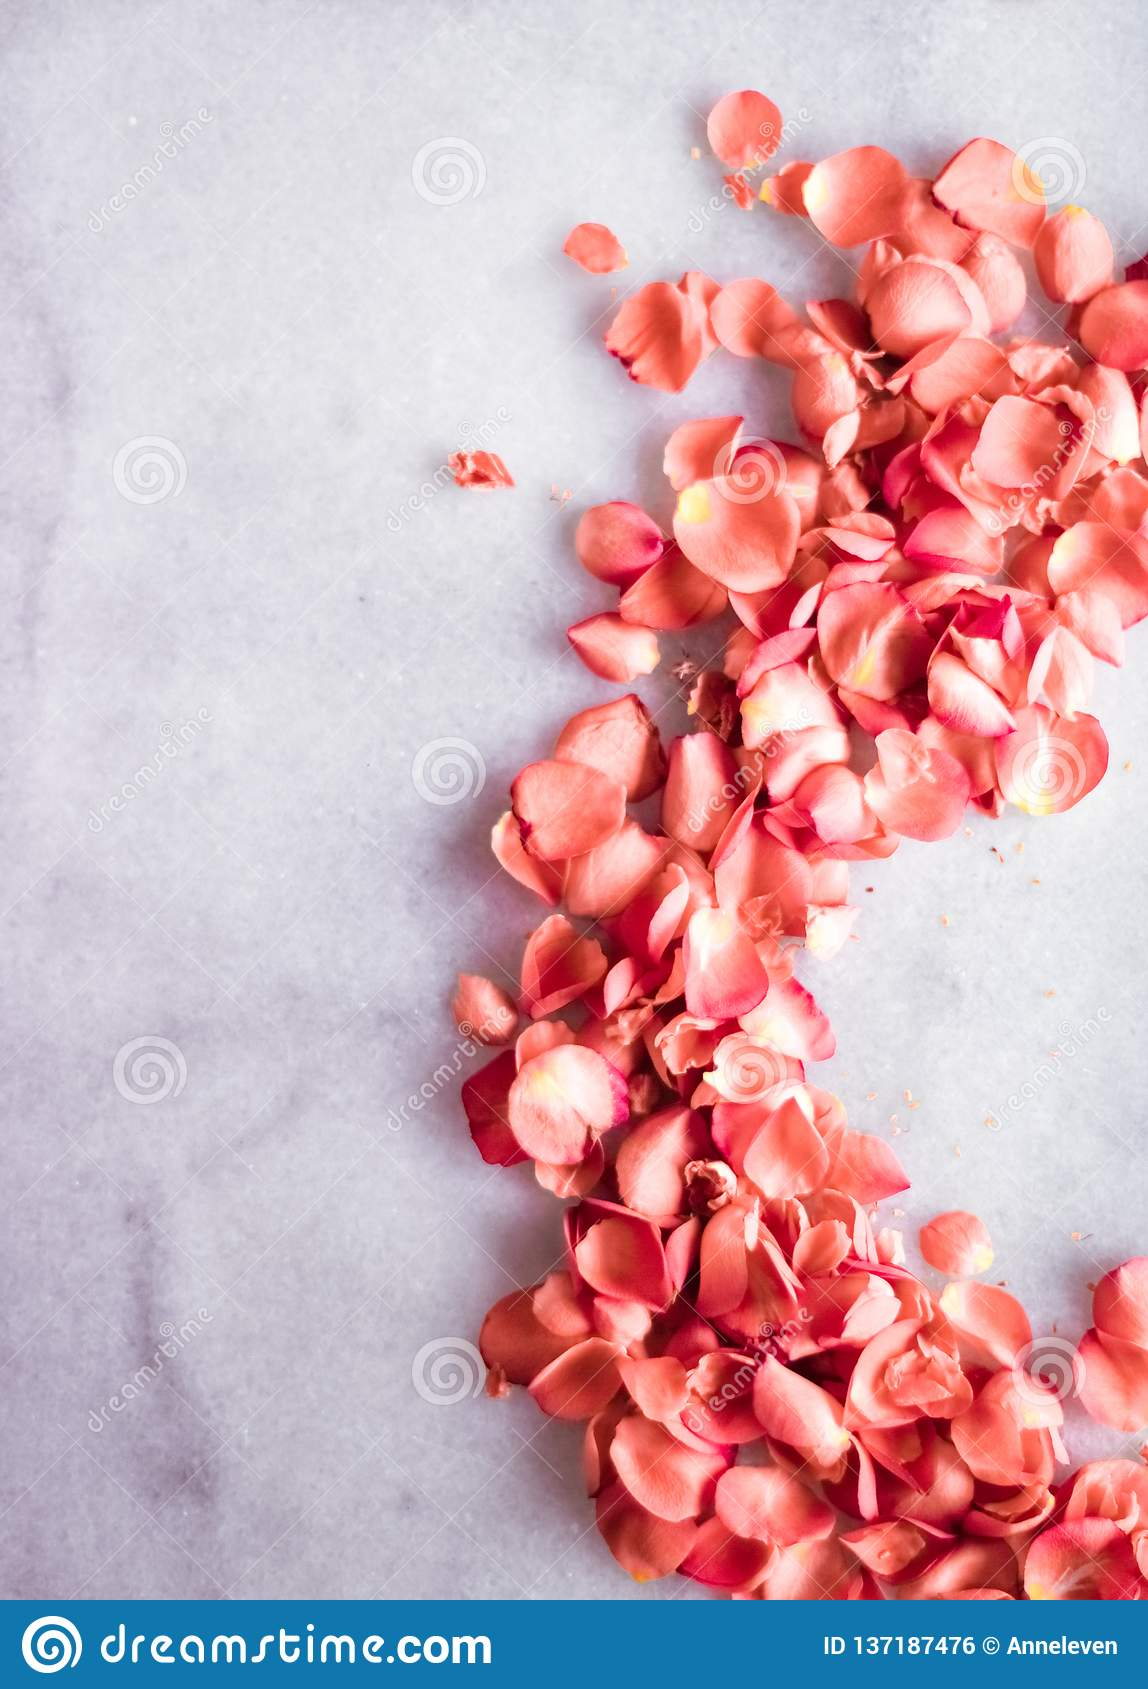 coral rose petals on marble, color of the year - flower backgrounds and holidays concept